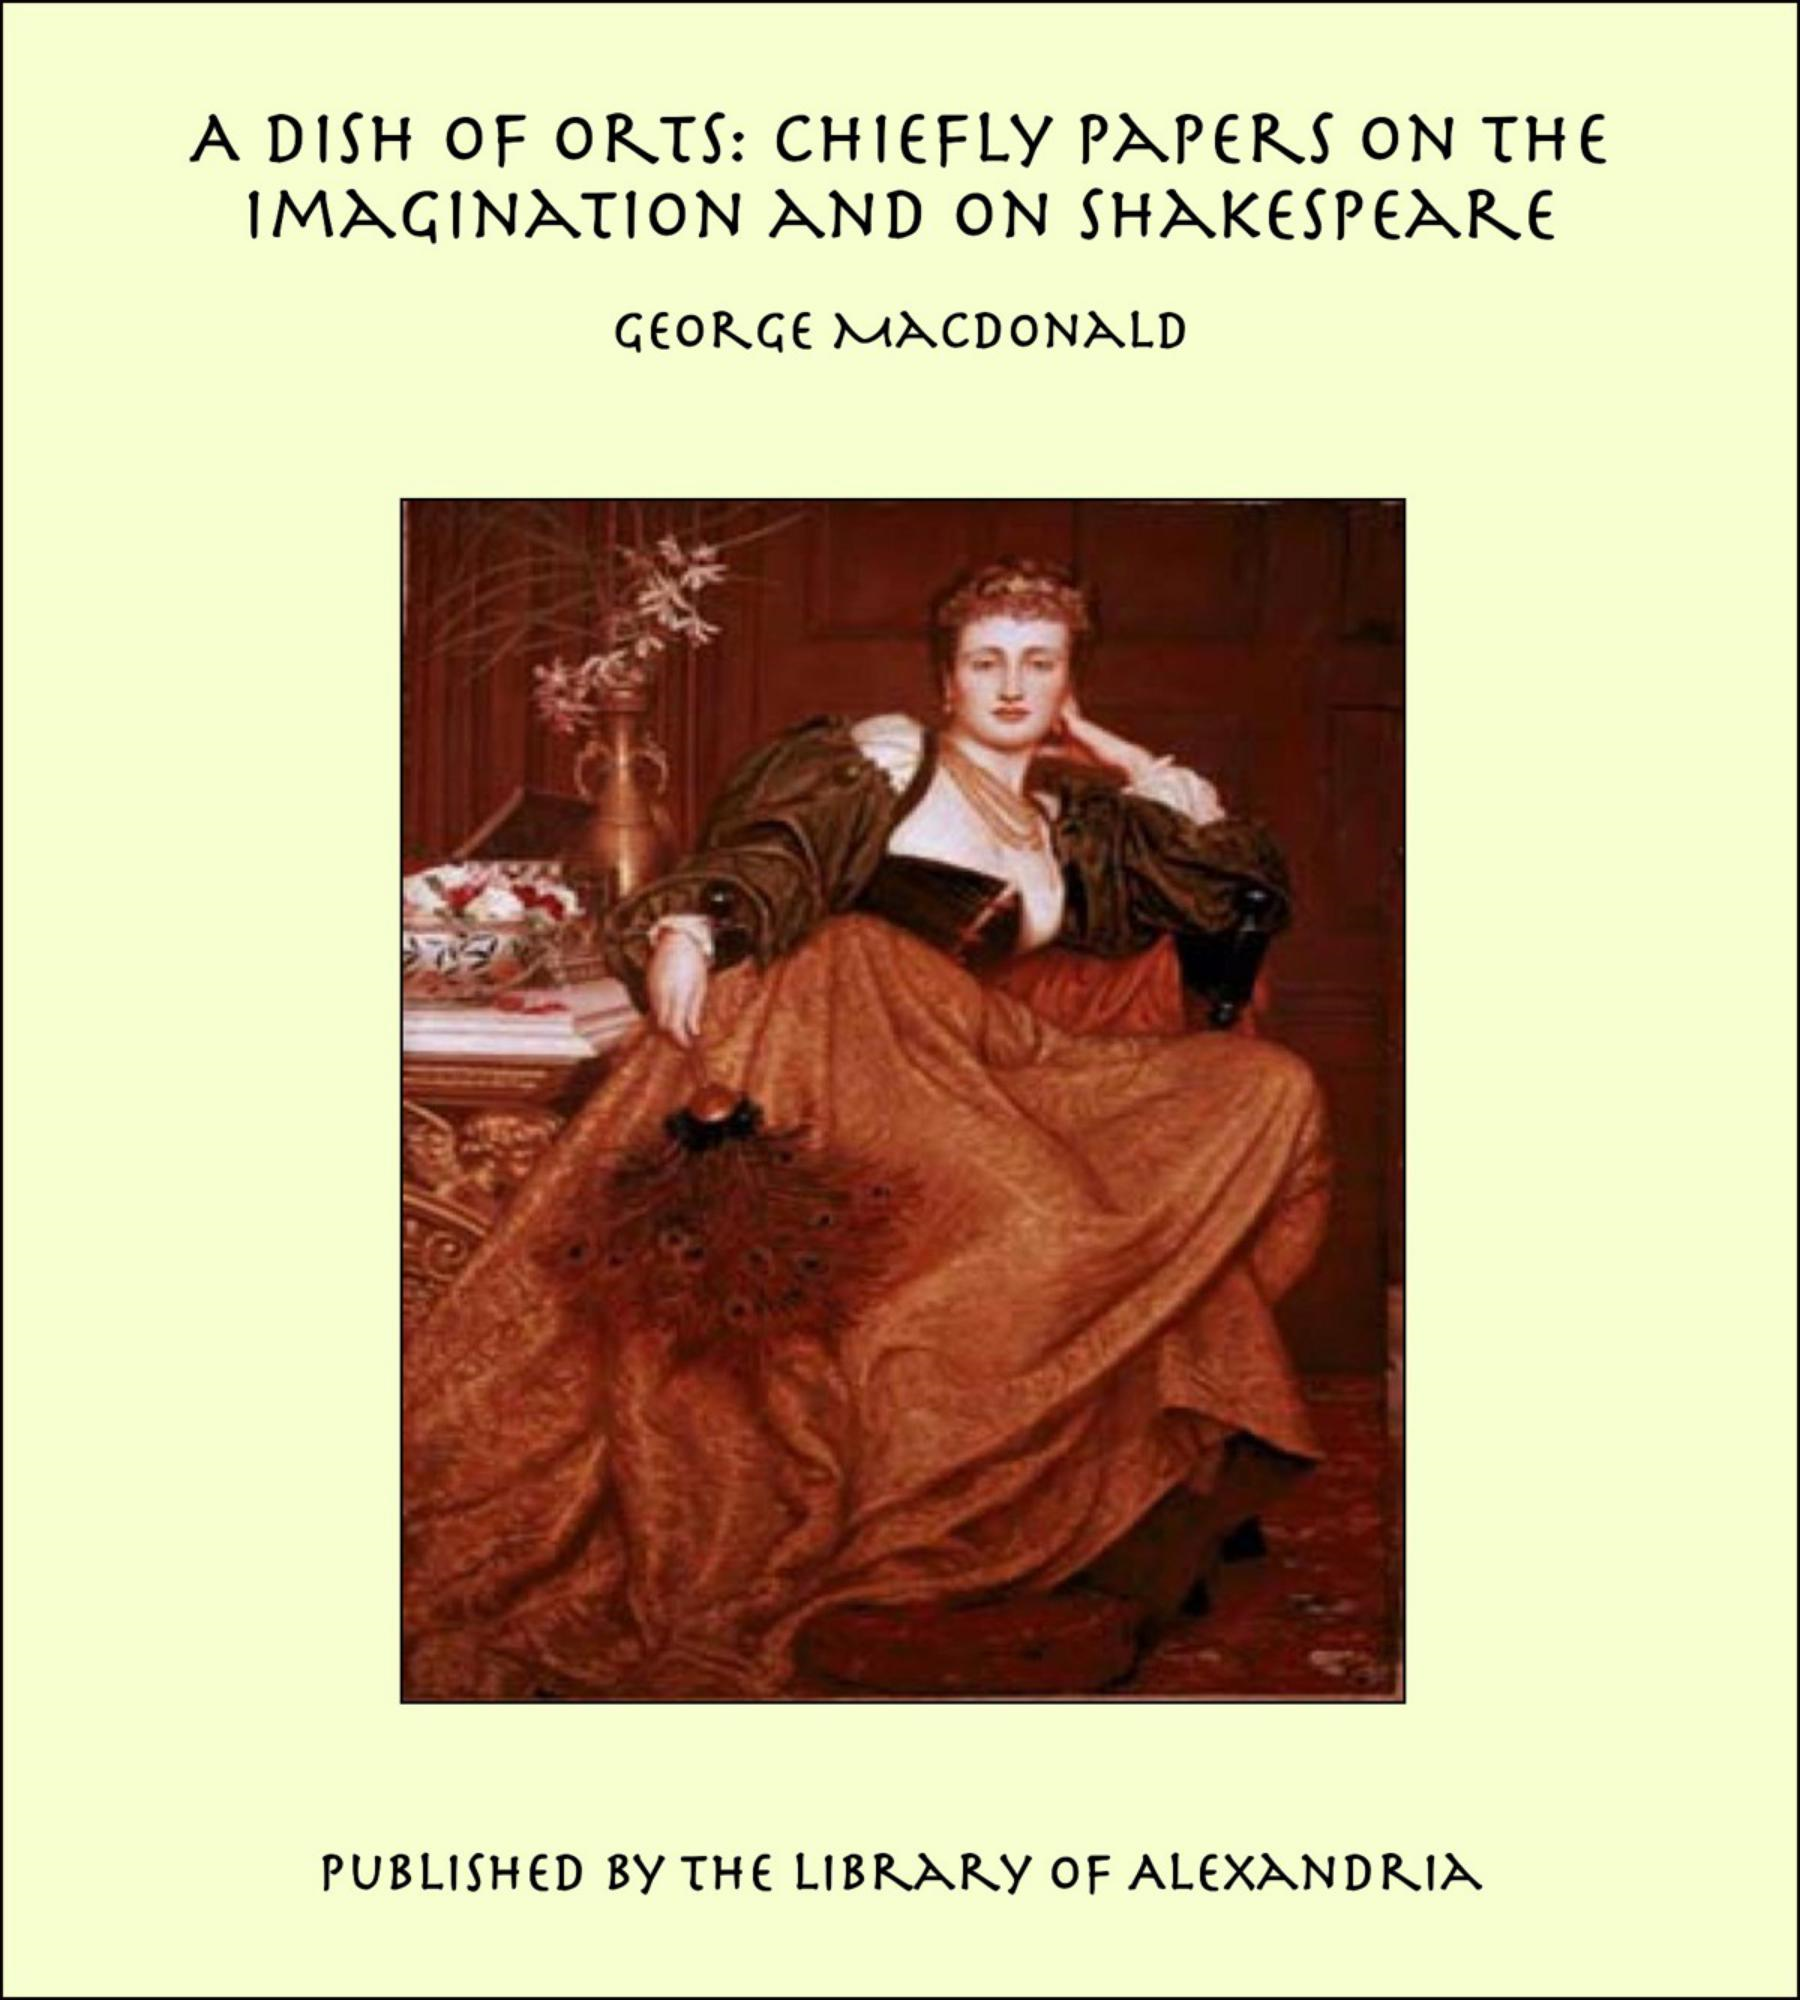 George MacDonald - A Dish of Orts: Chiefly Papers on the Imagination and on Shakespeare